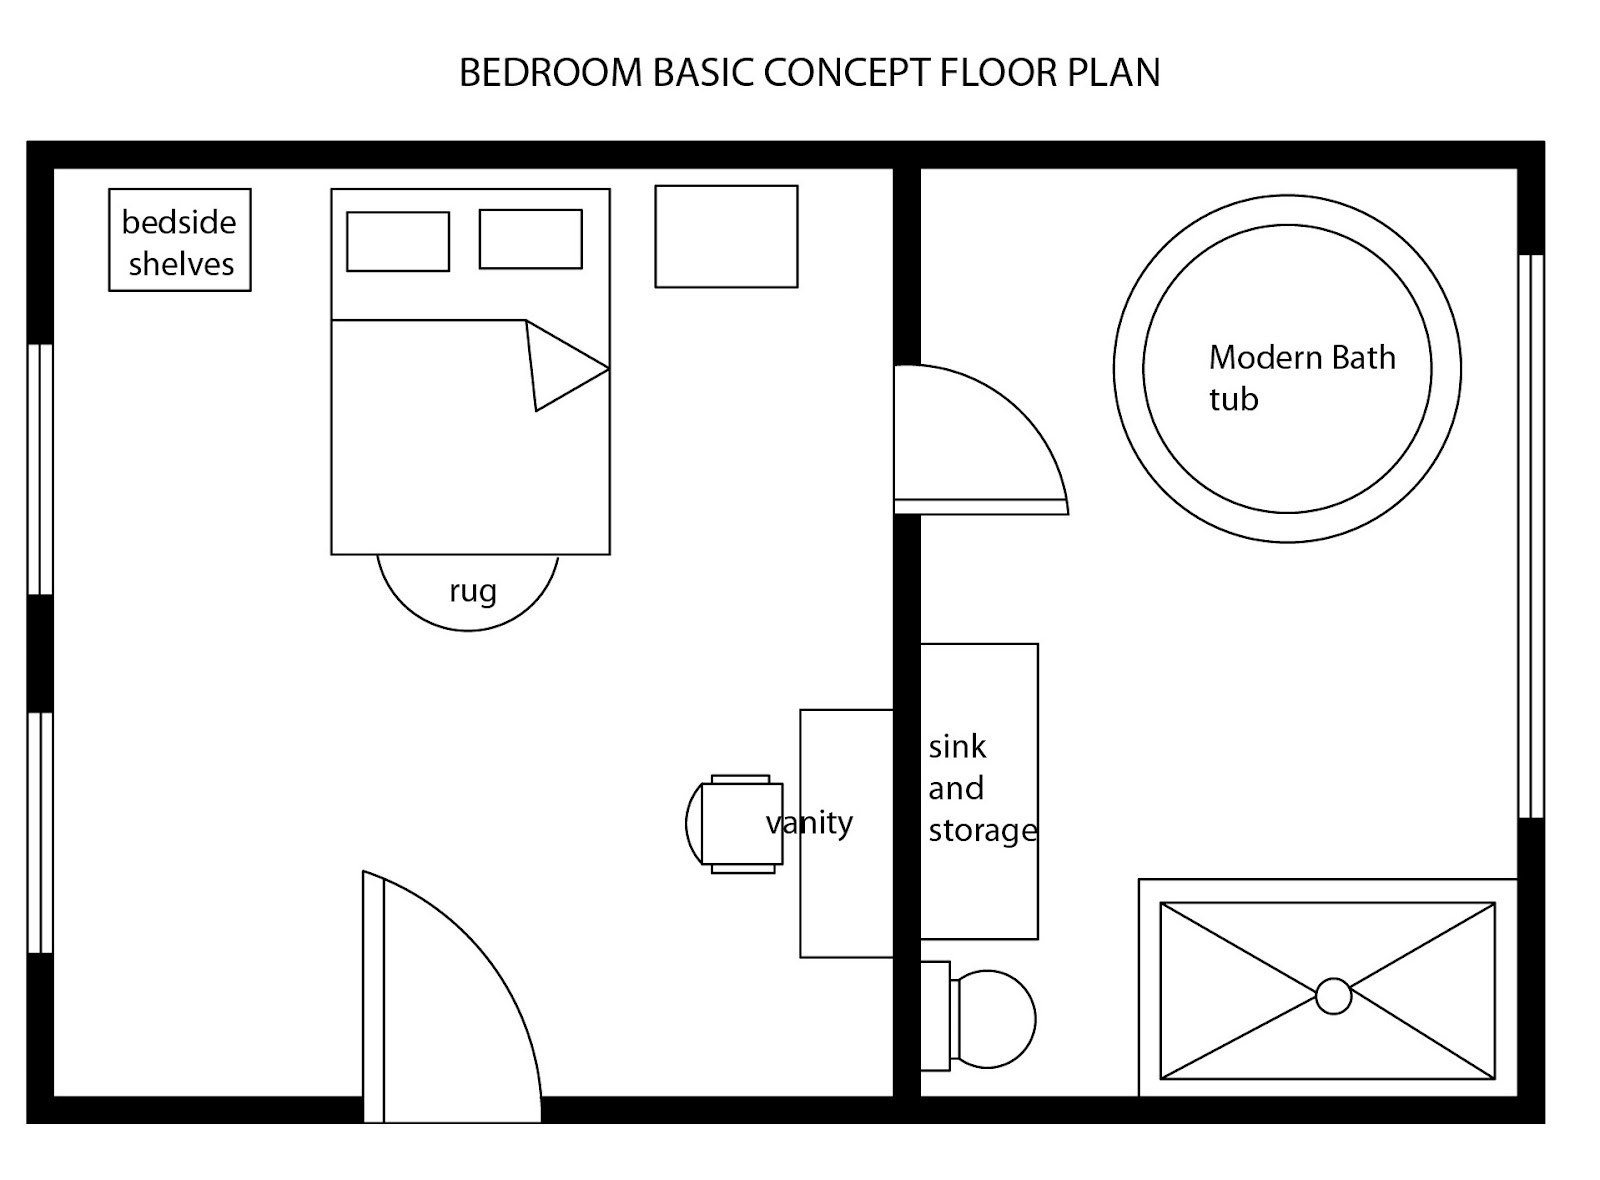 interior design decor modern bedroom basic floor plan. Black Bedroom Furniture Sets. Home Design Ideas